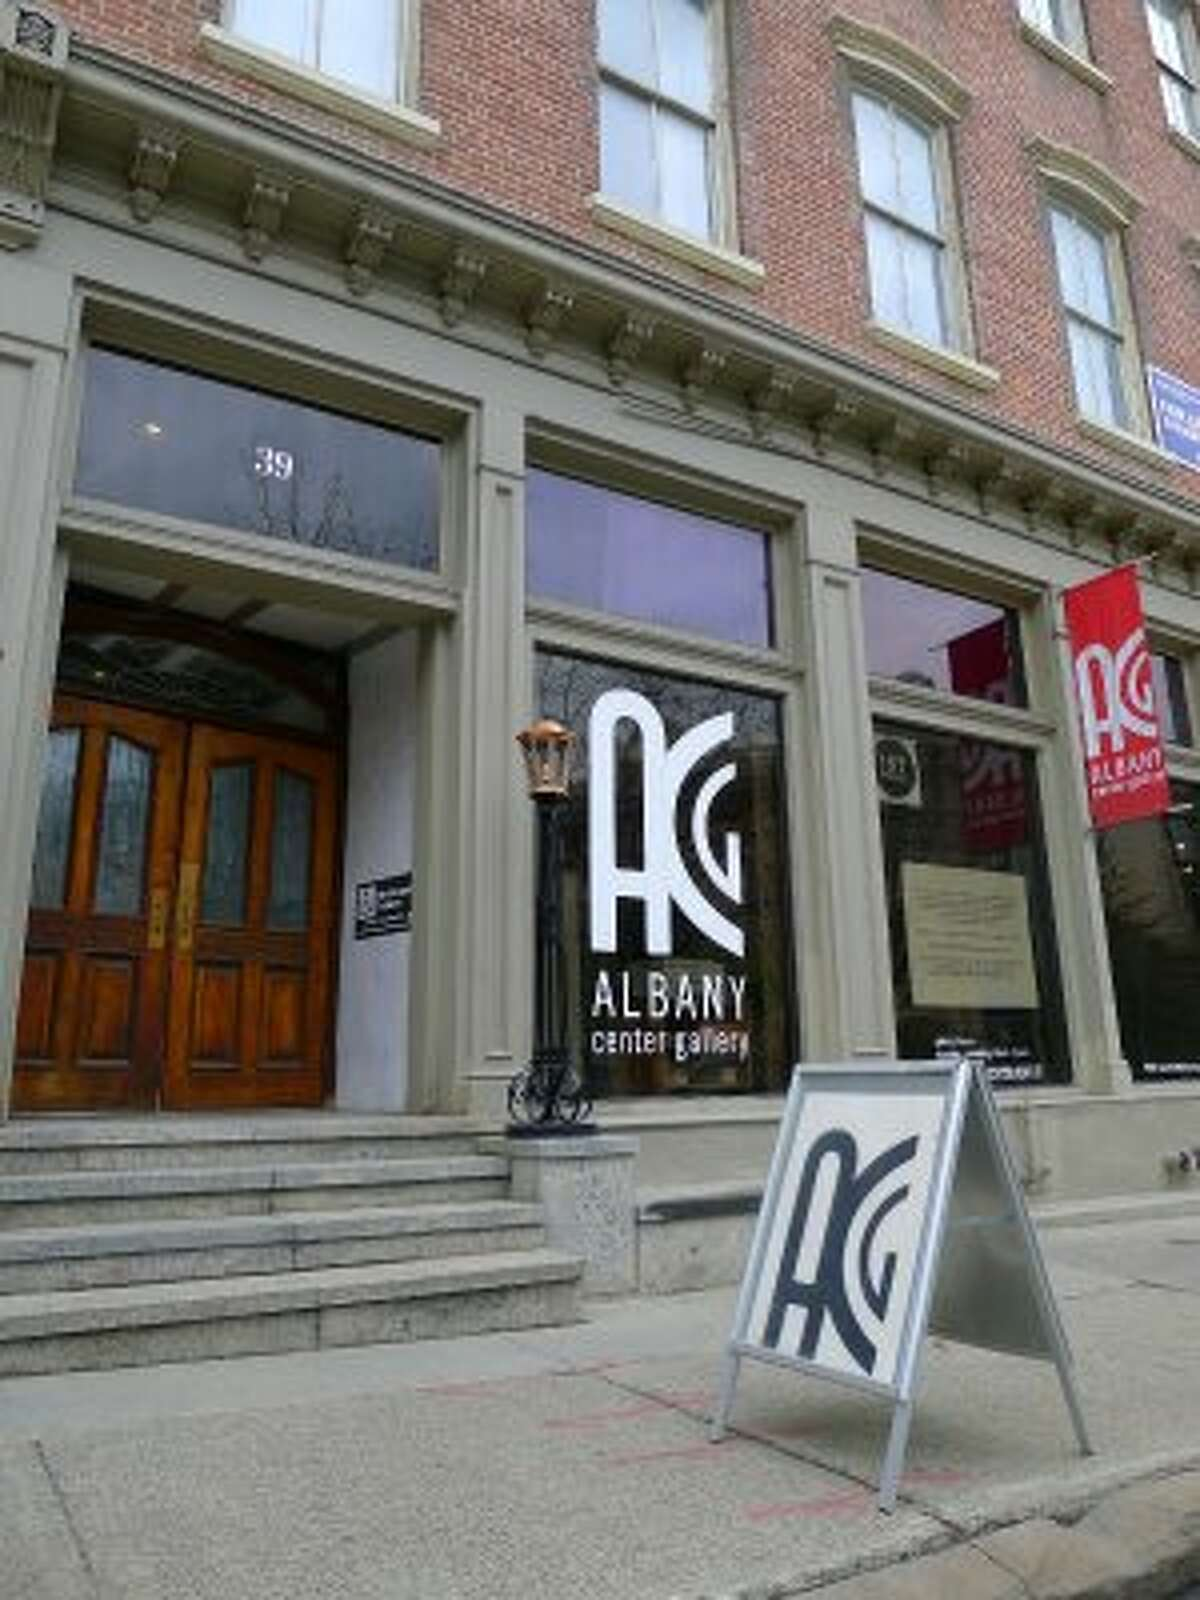 Come see local artists' work at the Albany Center Gallery's 2016 Mohawk Hudson Regional Invitational. When: May 6th, 5pm-8pm. Where:39 Columbia St, Albany. Click here for more information.